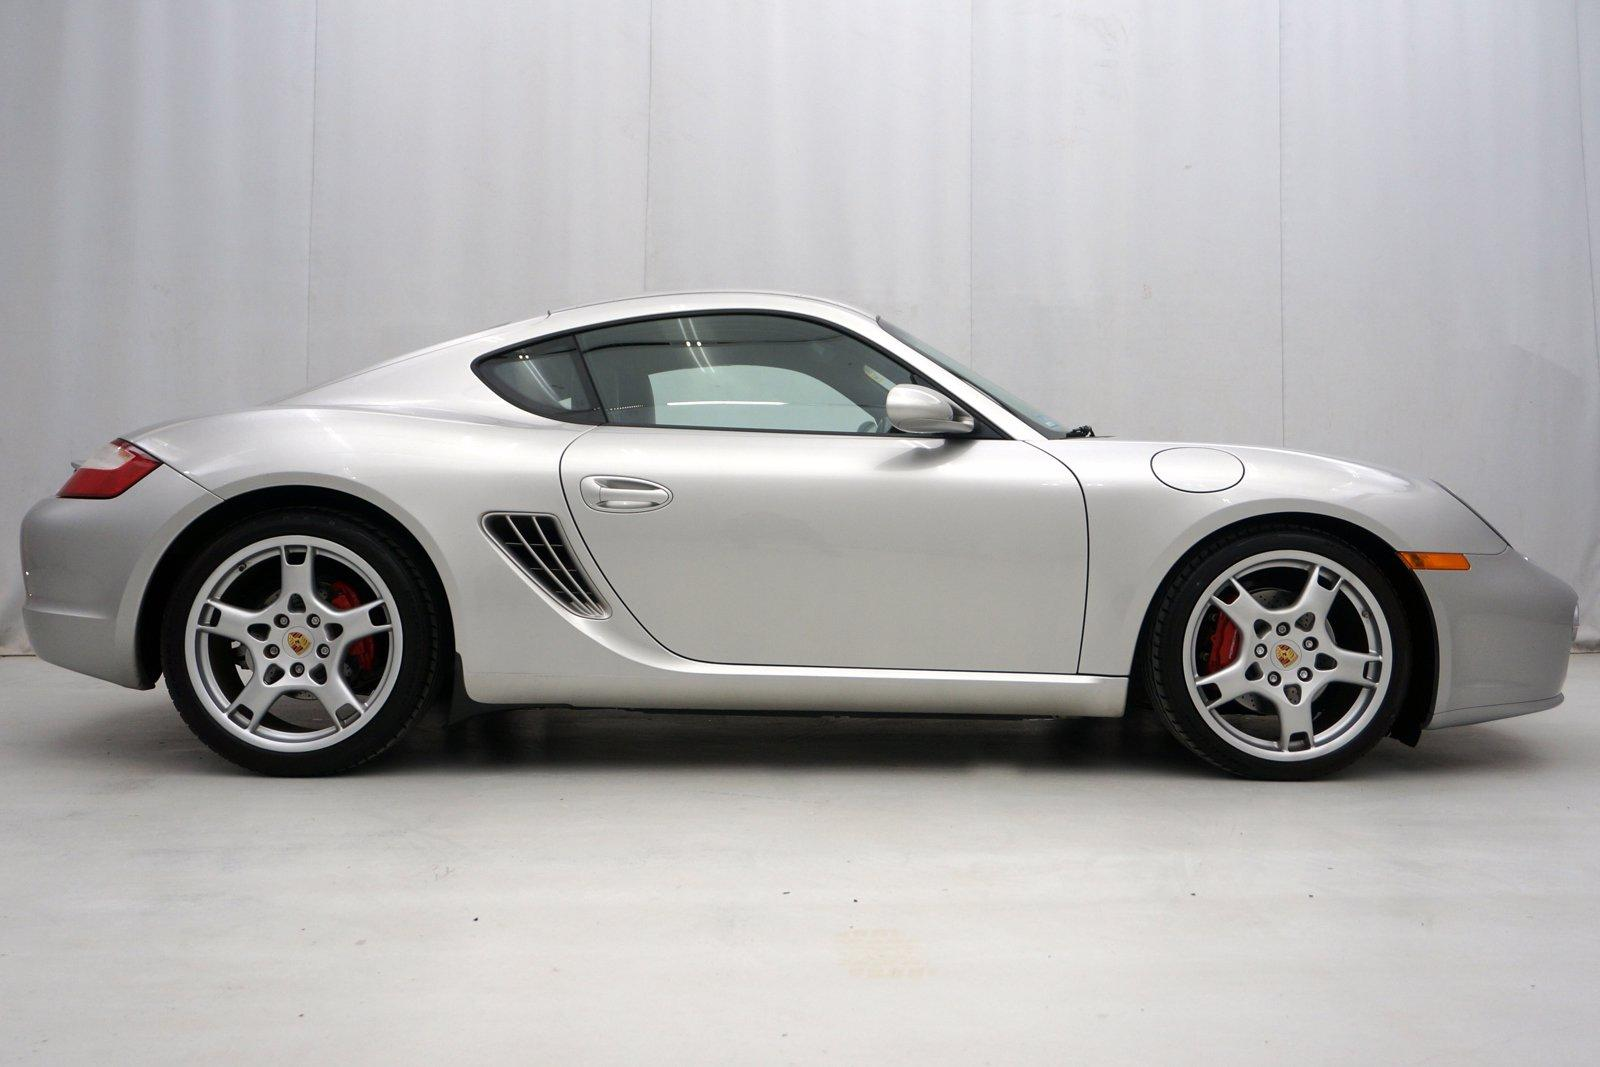 2006 Porsche Cayman S Stock U780270 For Sale Near King Of